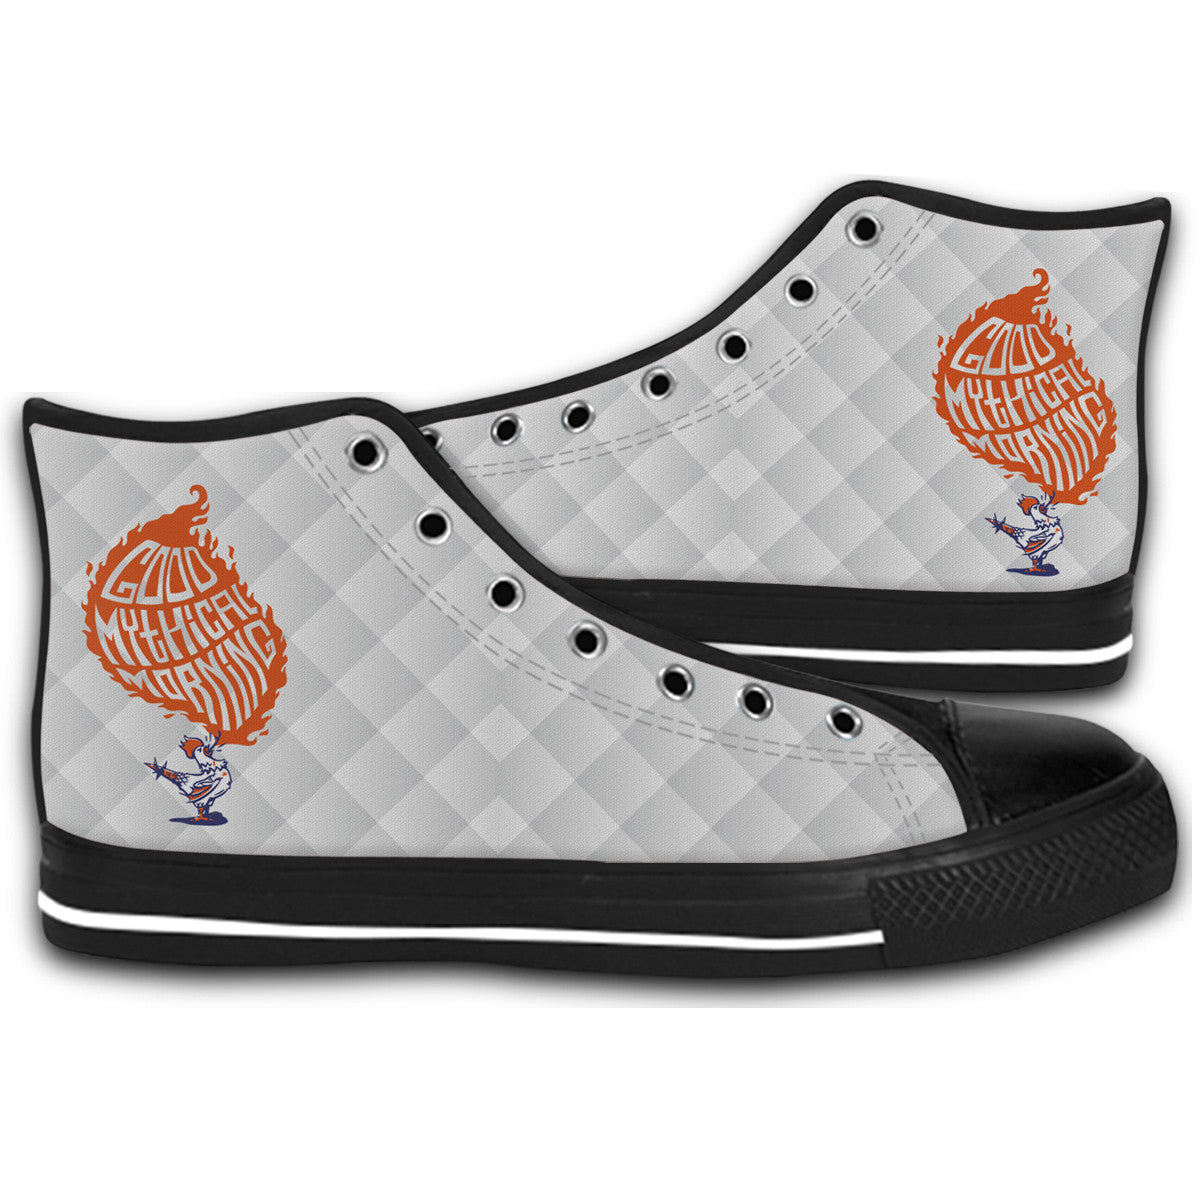 buy popular 46e71 745c1 Good Mythical Morning Funny Canvas 1 Style Shoes Fashion Sneakers